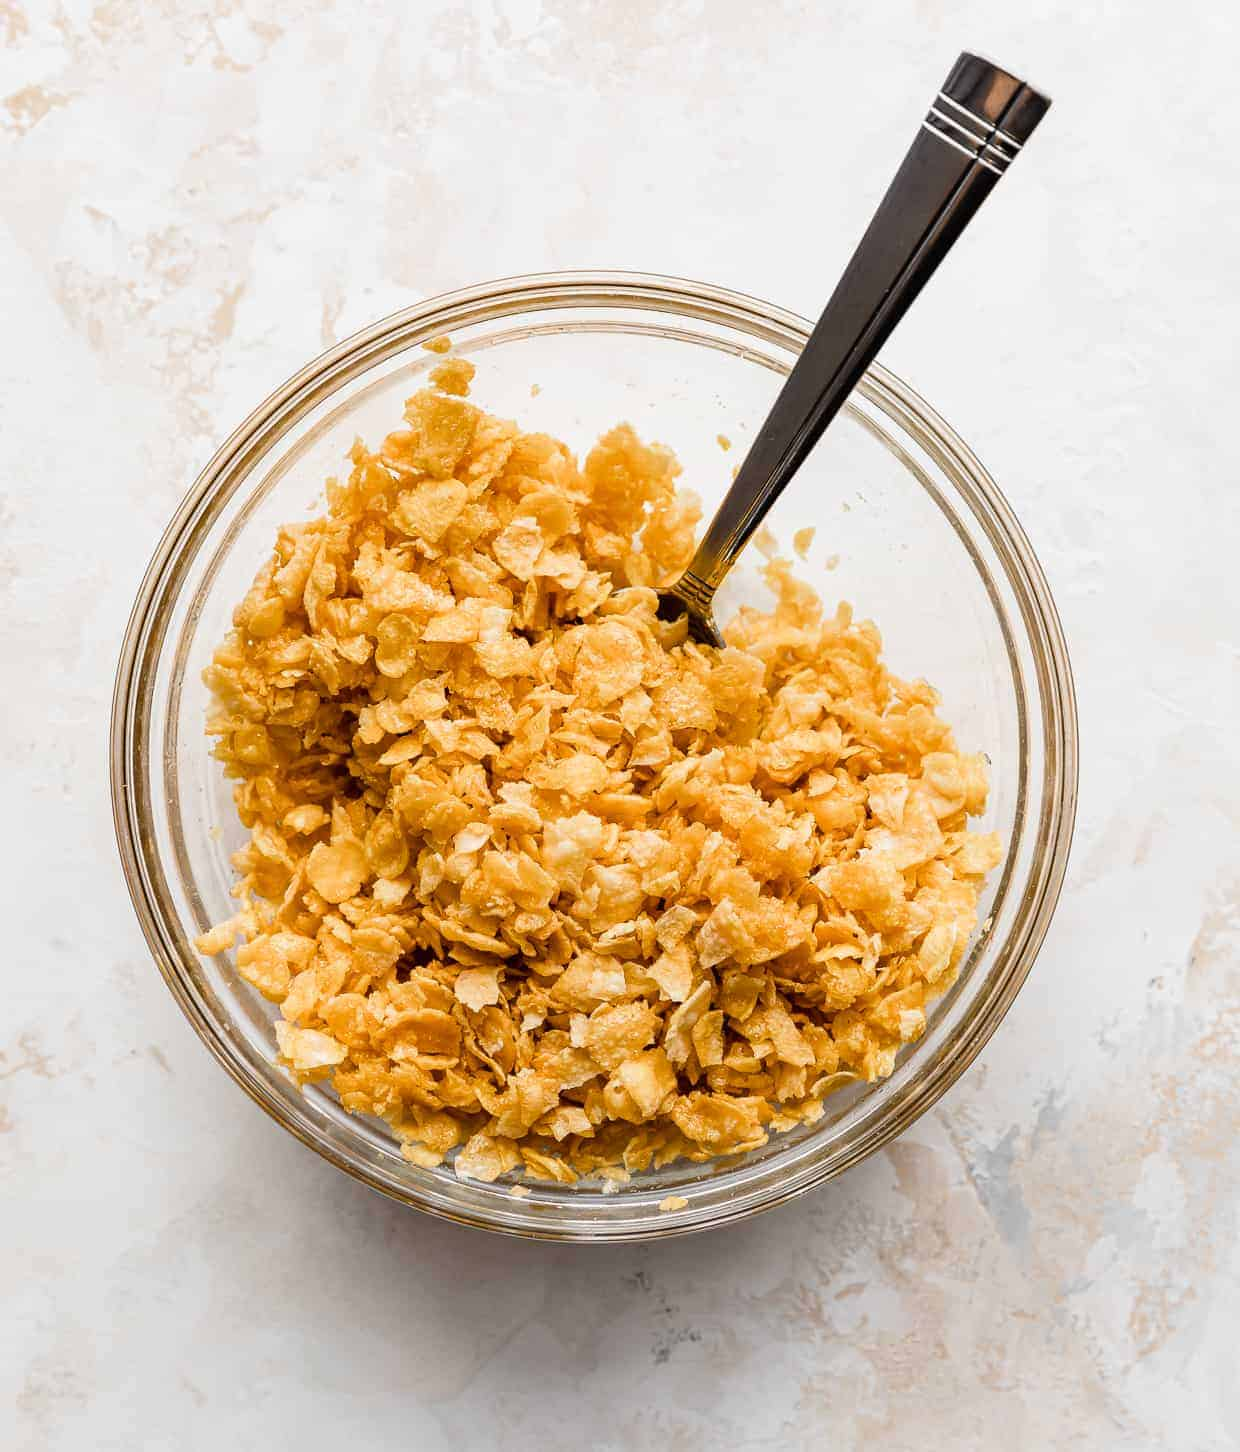 A glass bowl with crushed cornflakes in it.